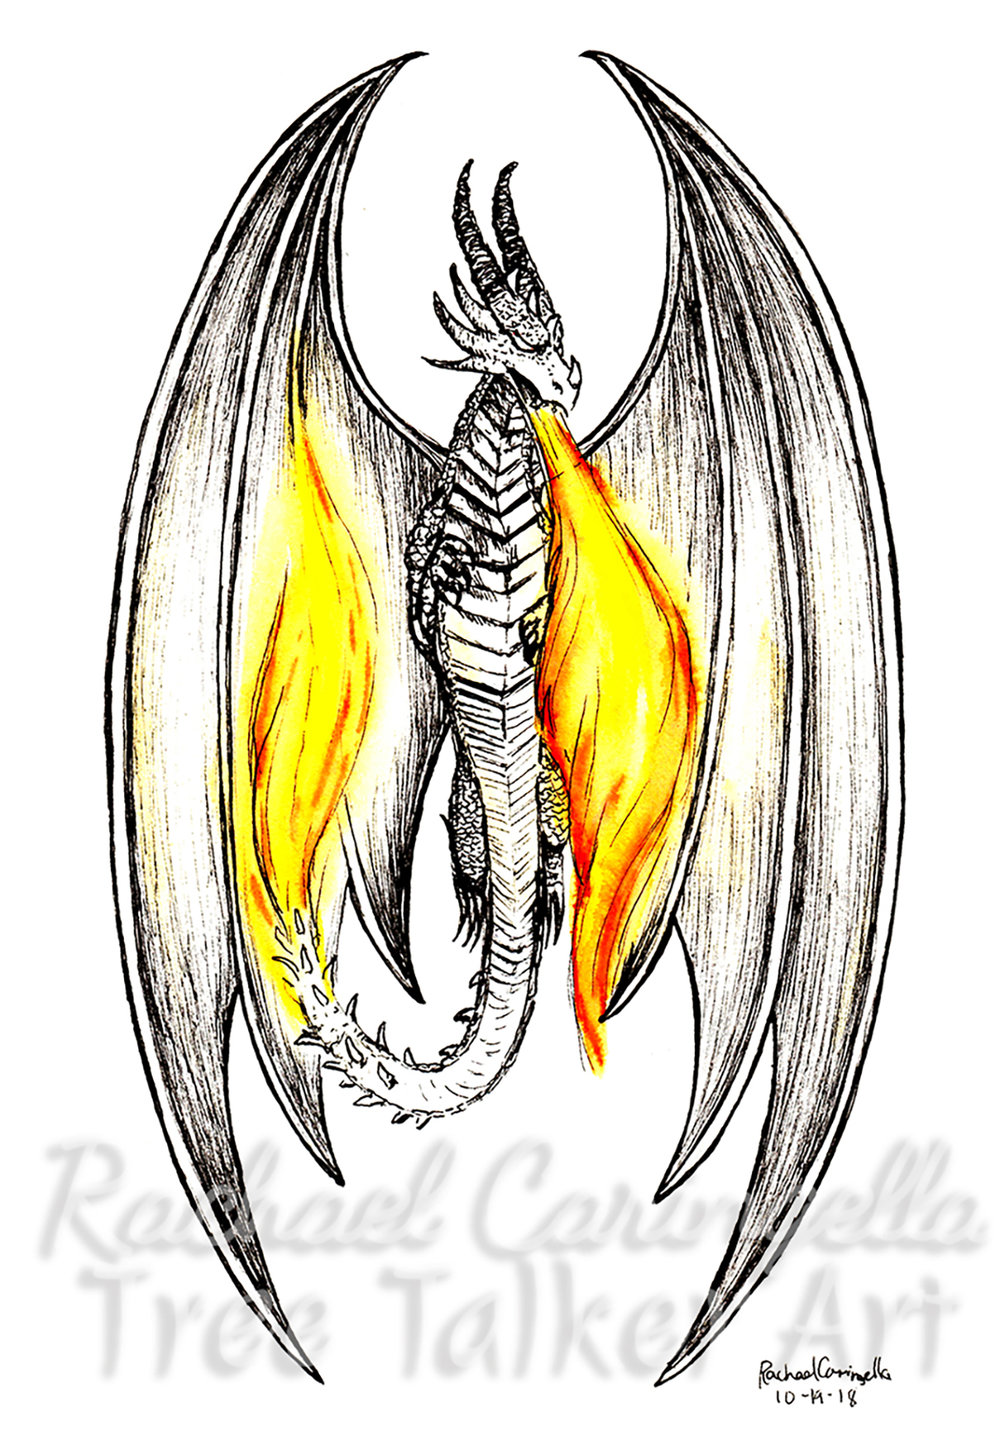 Flying Dragon Art Inktober 2018 Illustration of a Flying Dragon